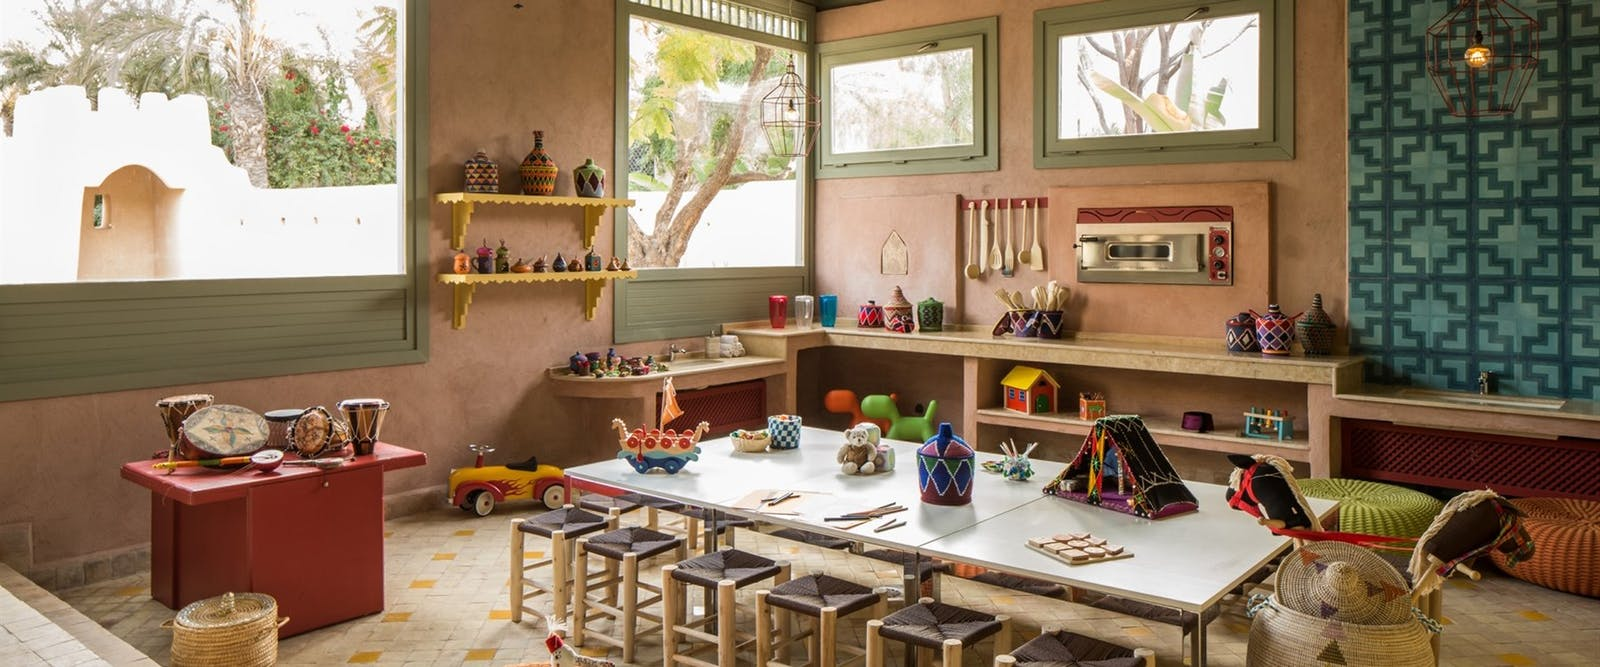 Kids Club Play Room at Four Seasons Marrakech, Morocco